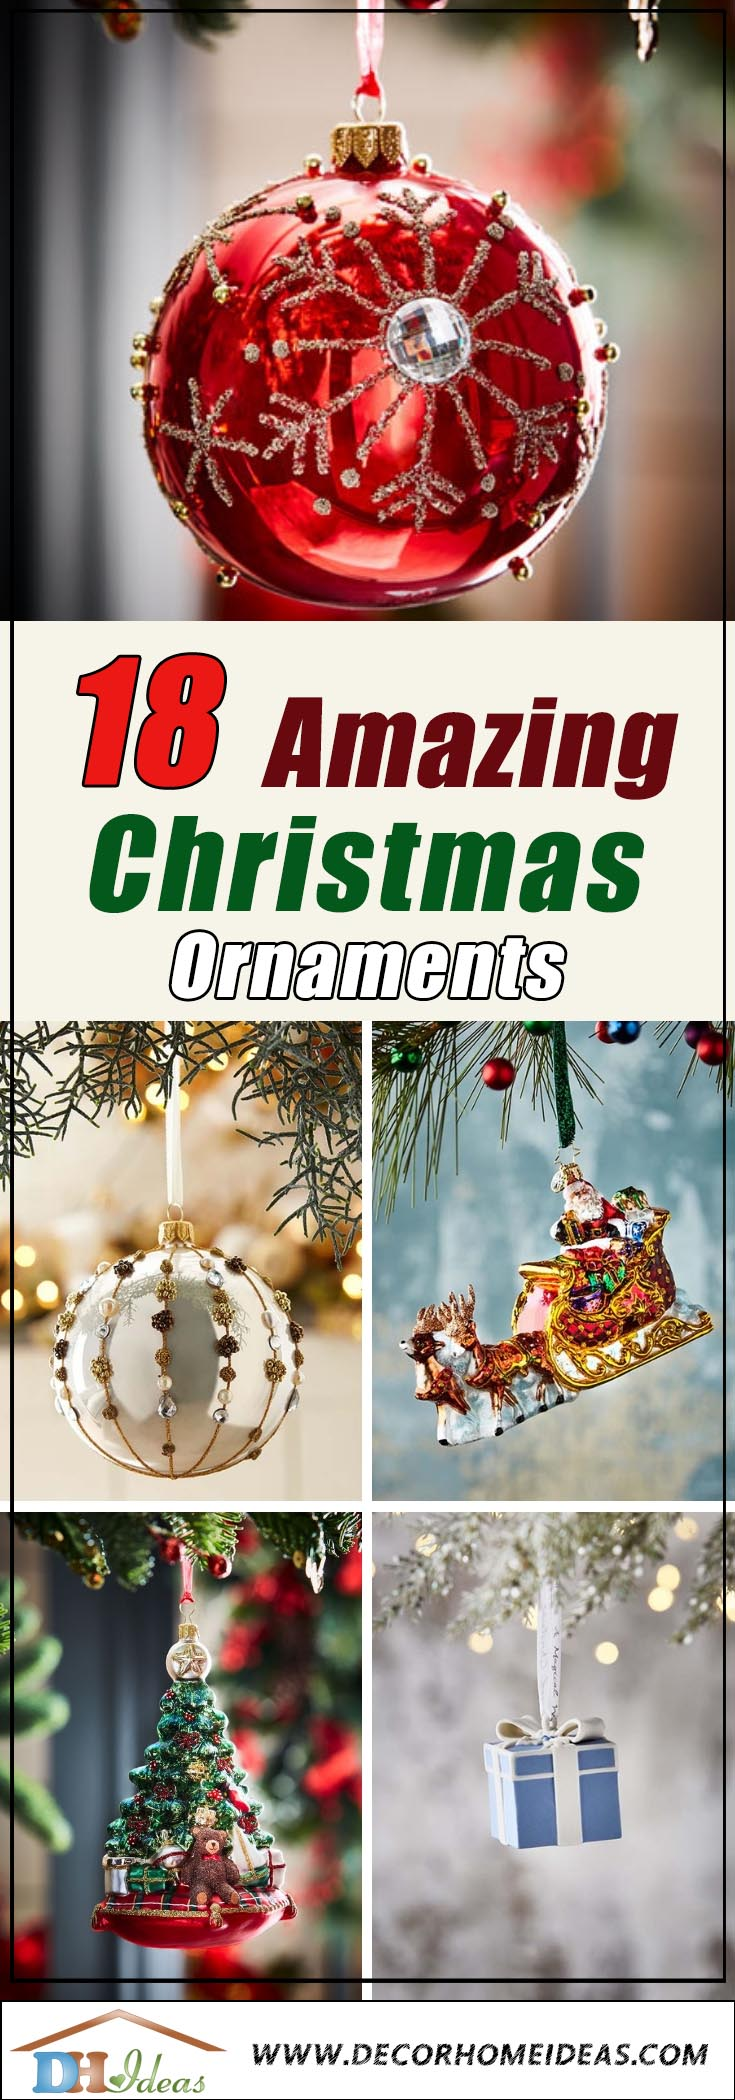 Fabulous Christmas Ornaments #Christmas #ornaments #Christmasdecor #decorhomeideas